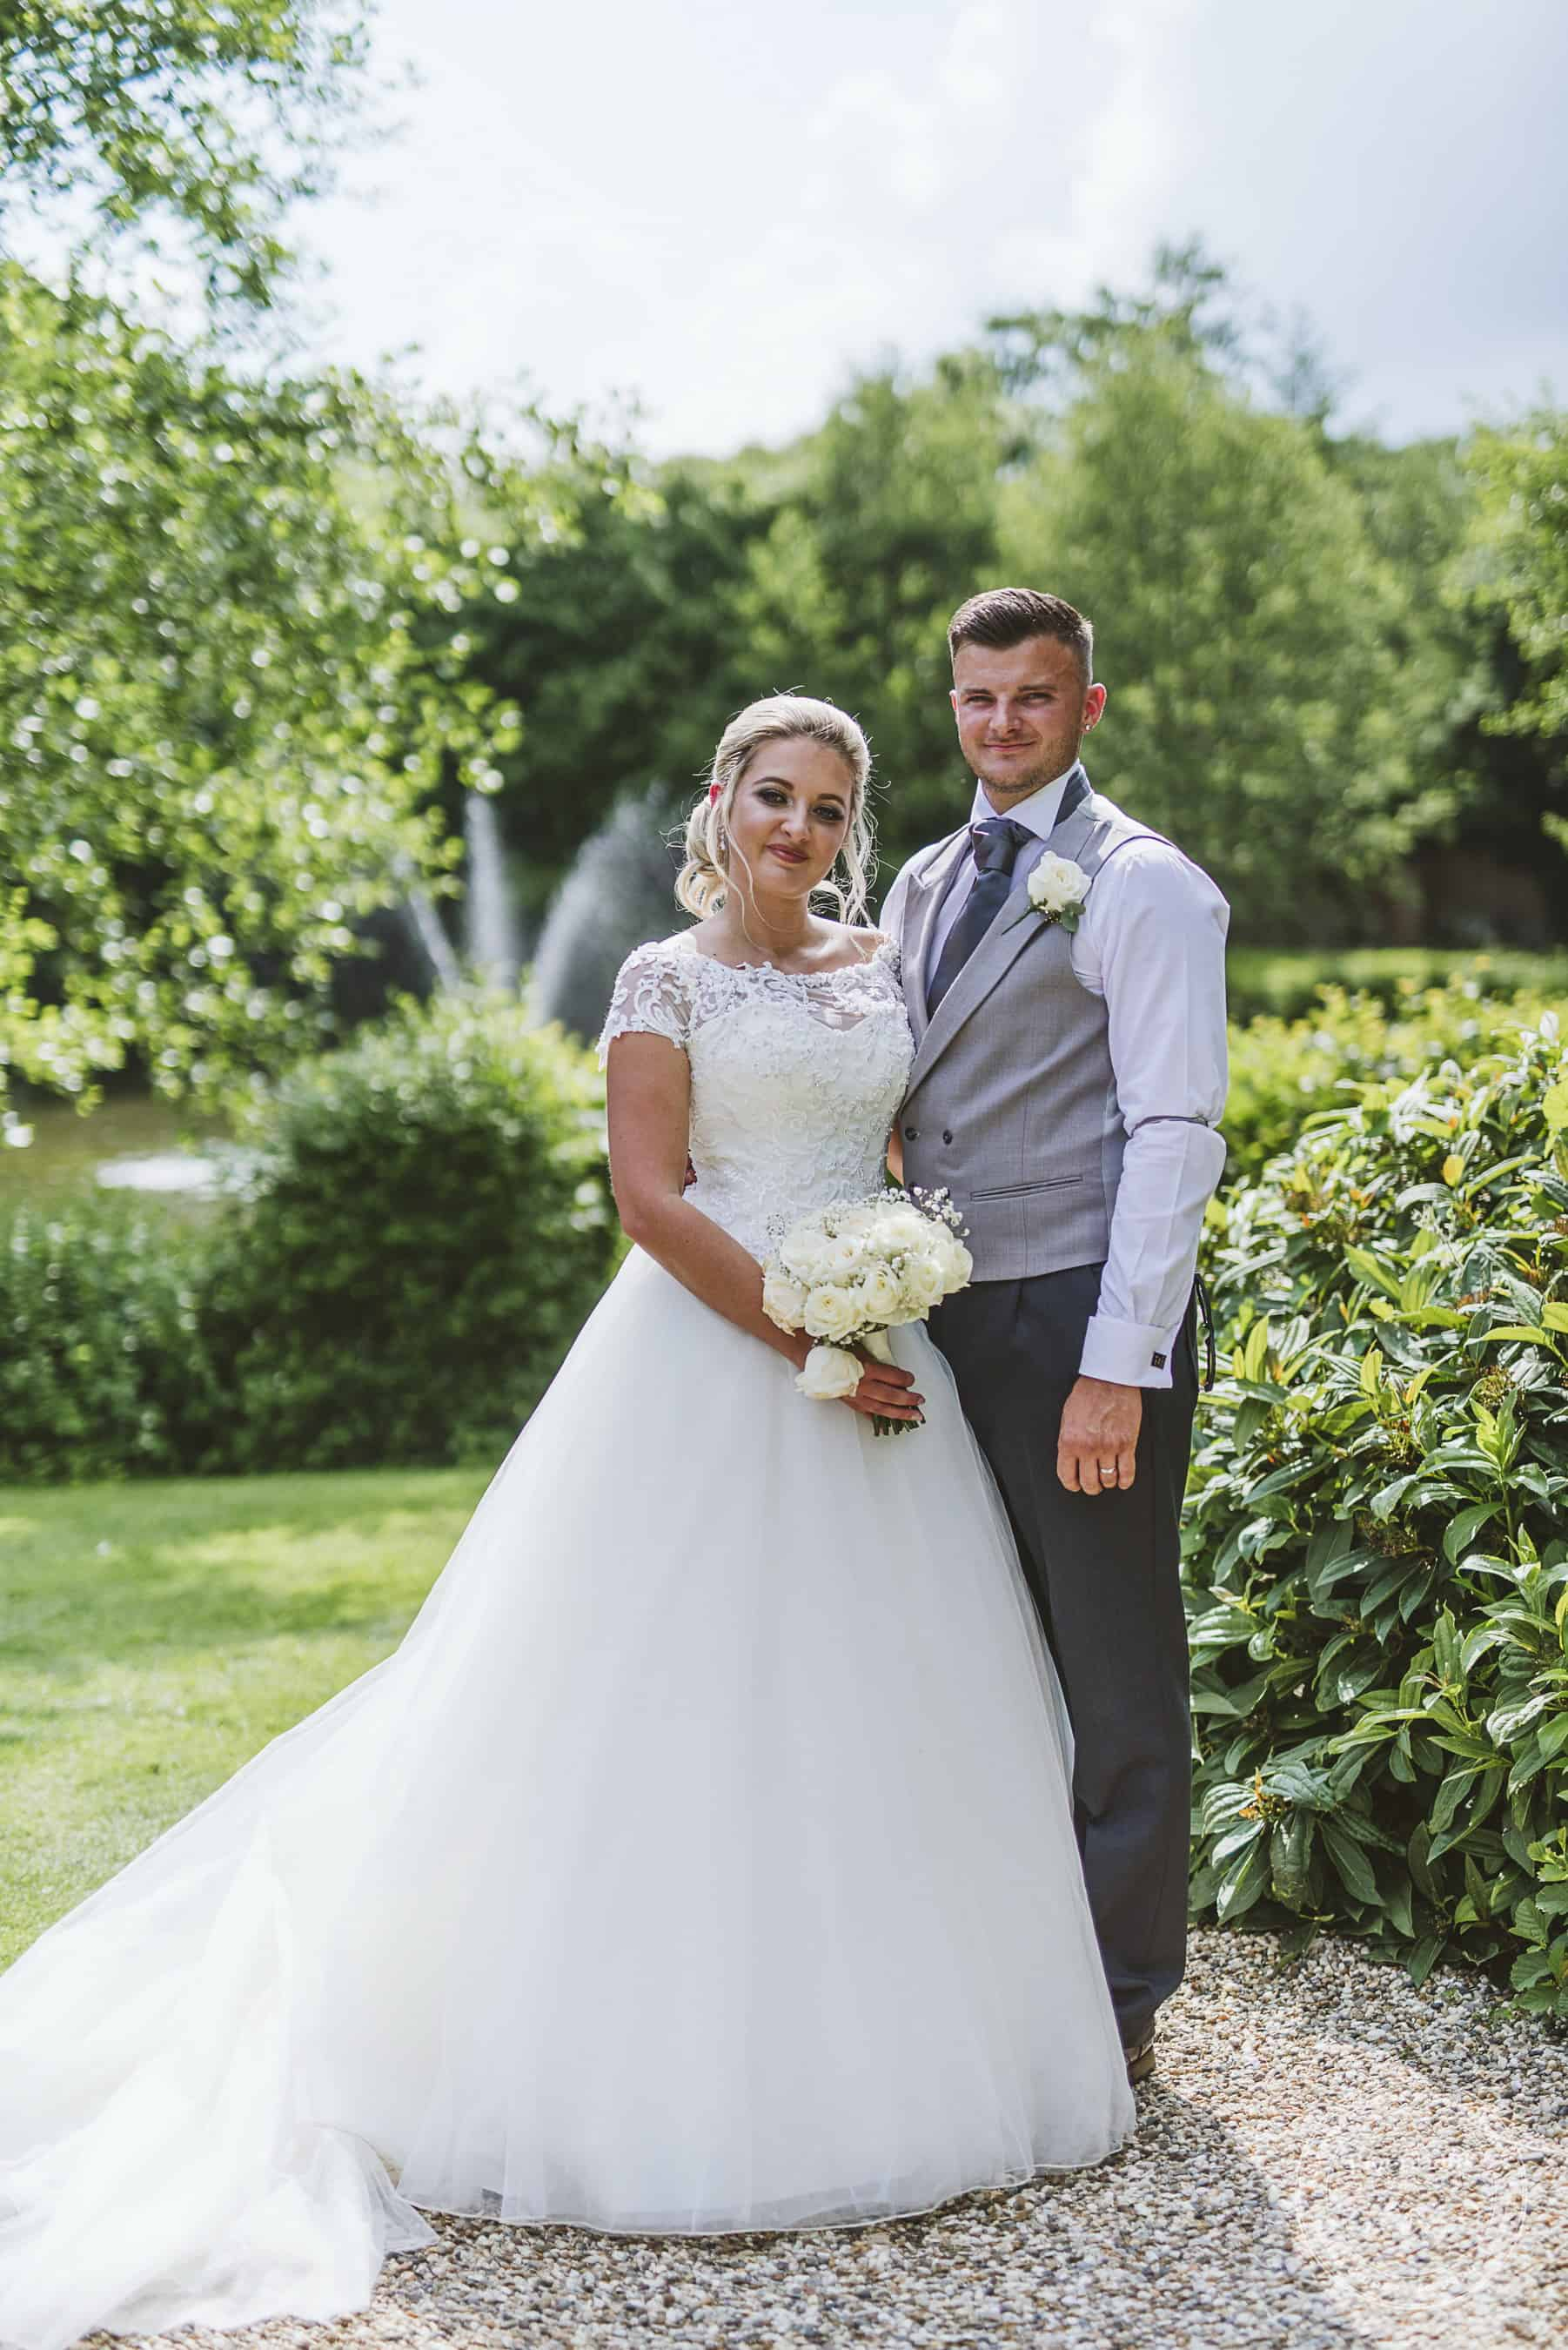 030618 Leez Priory Wedding Photography Lavenham Photographic 077